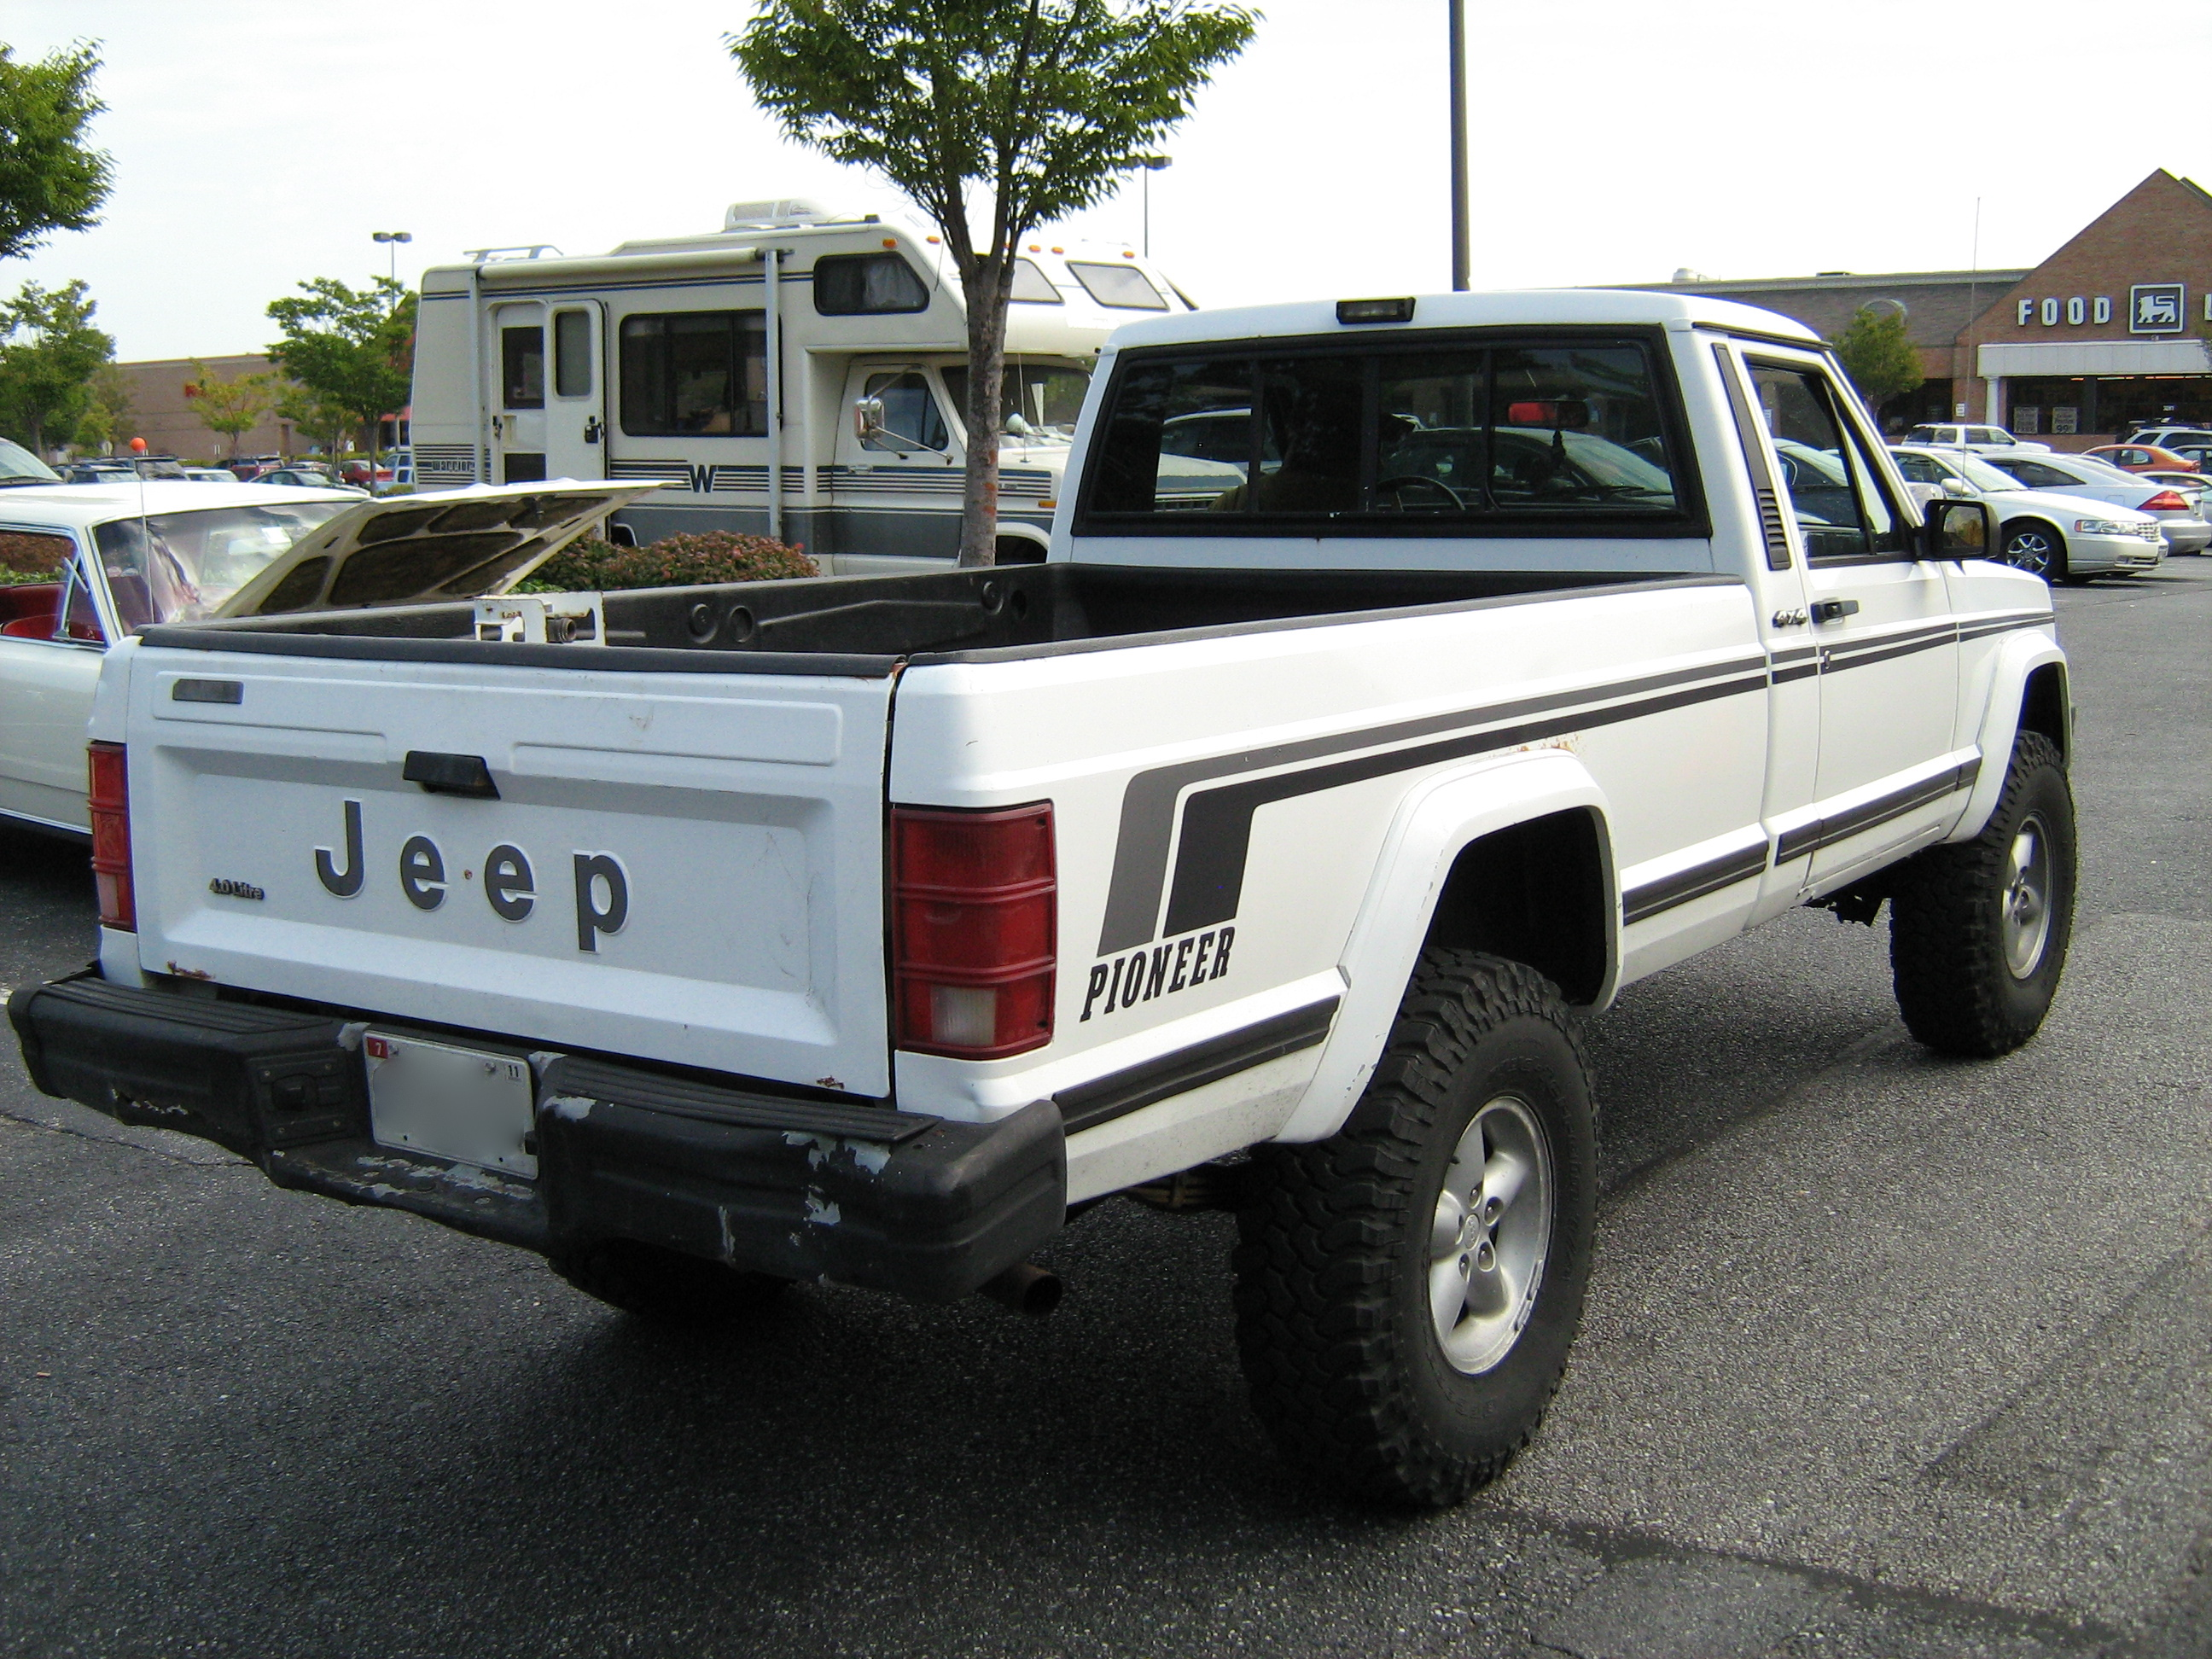 Jeep Comanche photo 05